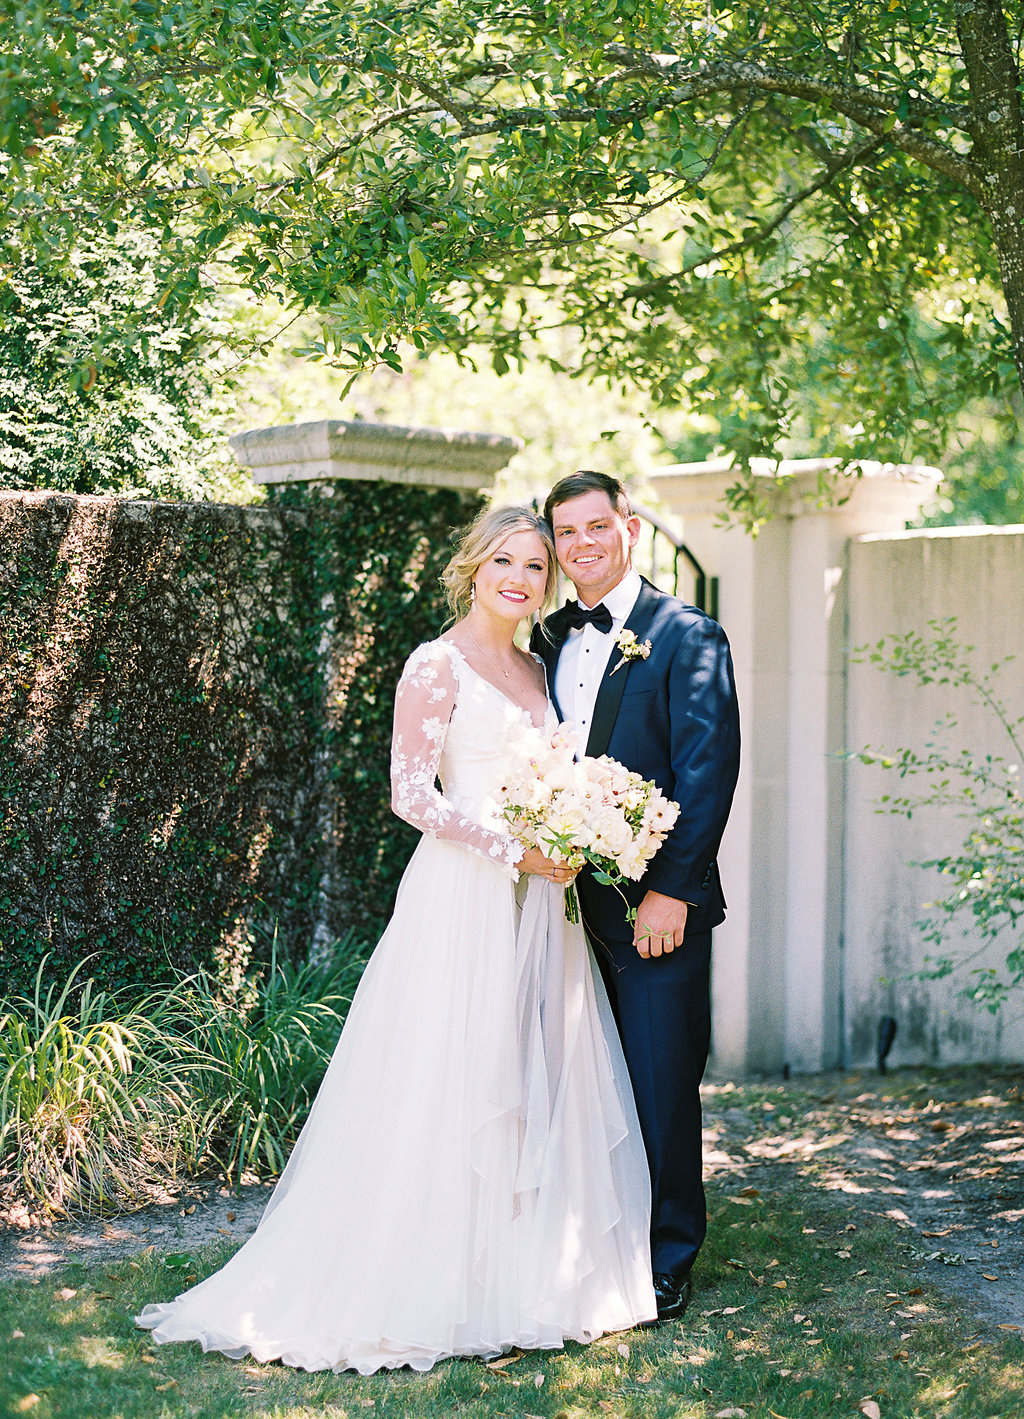 bride and groom posing in front of wall of greenery